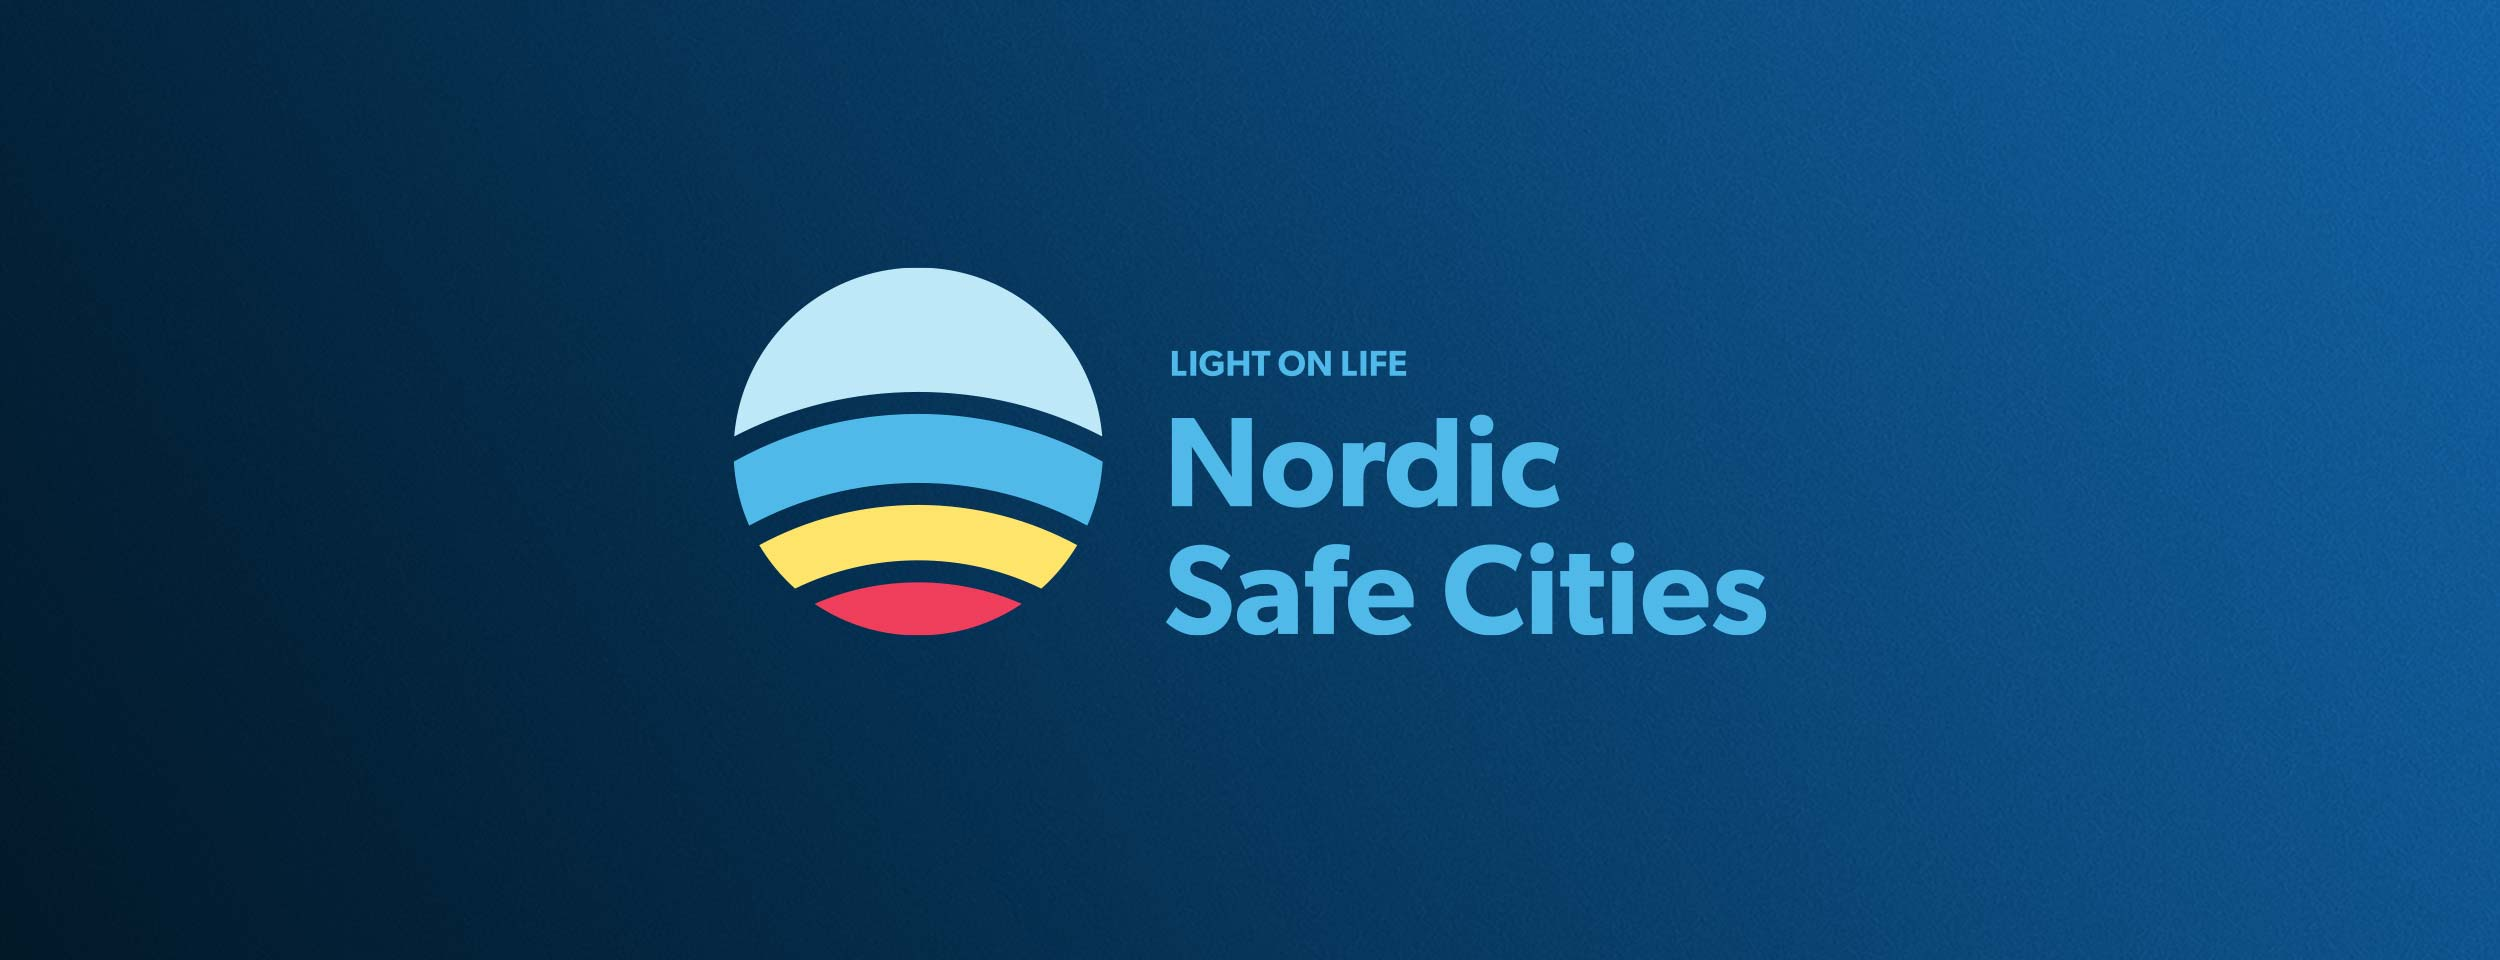 Nordic Safe Cities Logo with payoff